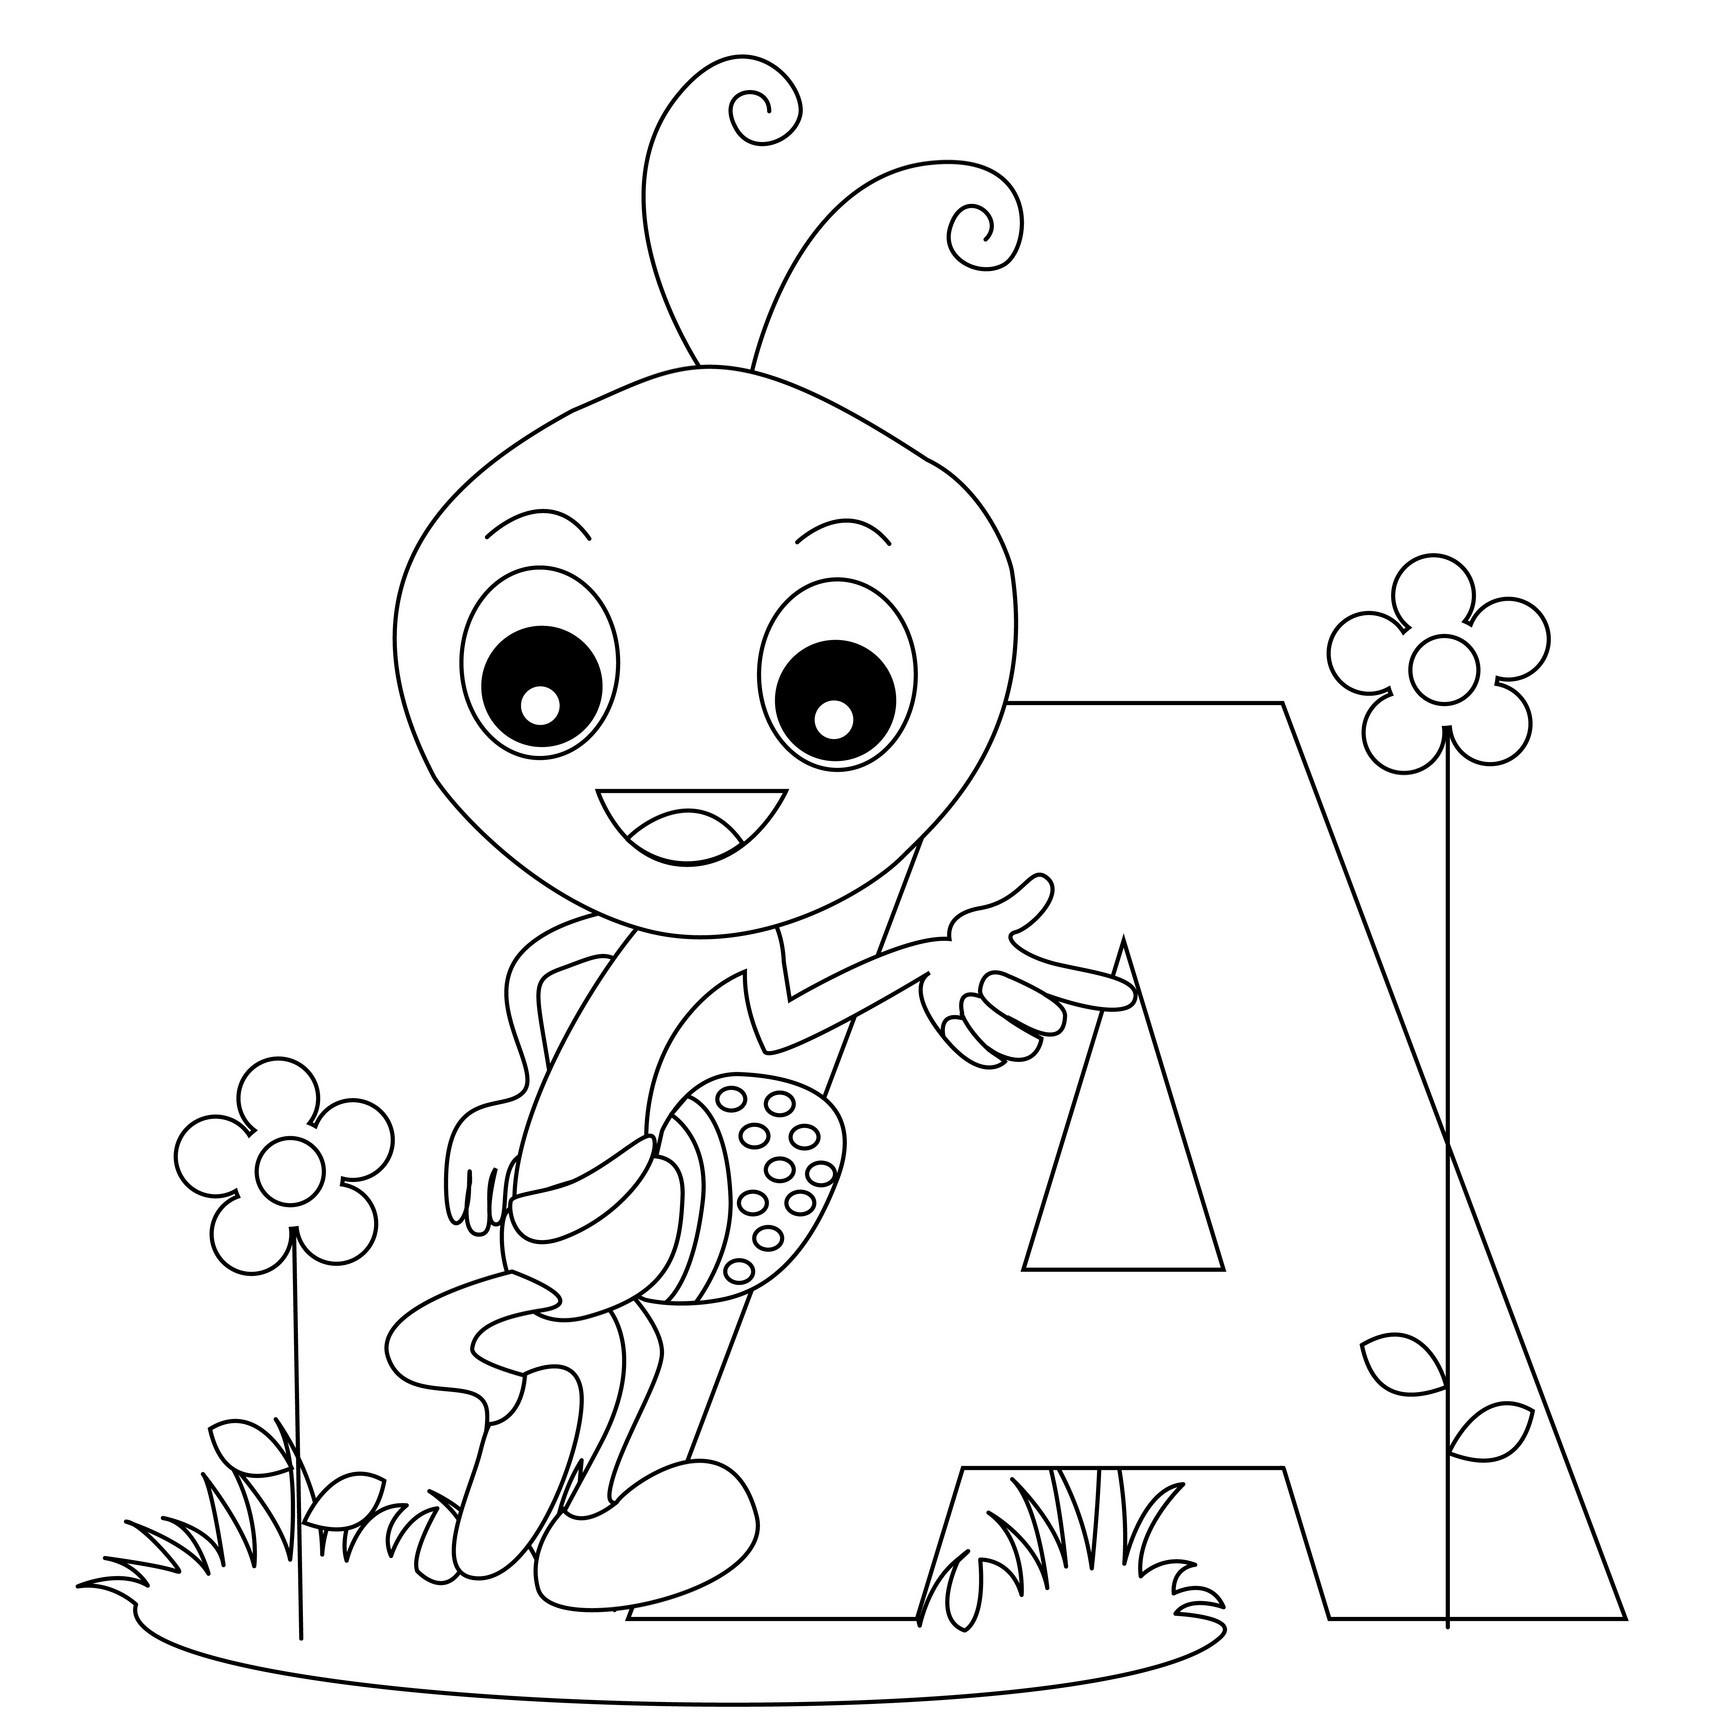 abc coloring pages for kids printable free printable alphabet coloring pages for kids best